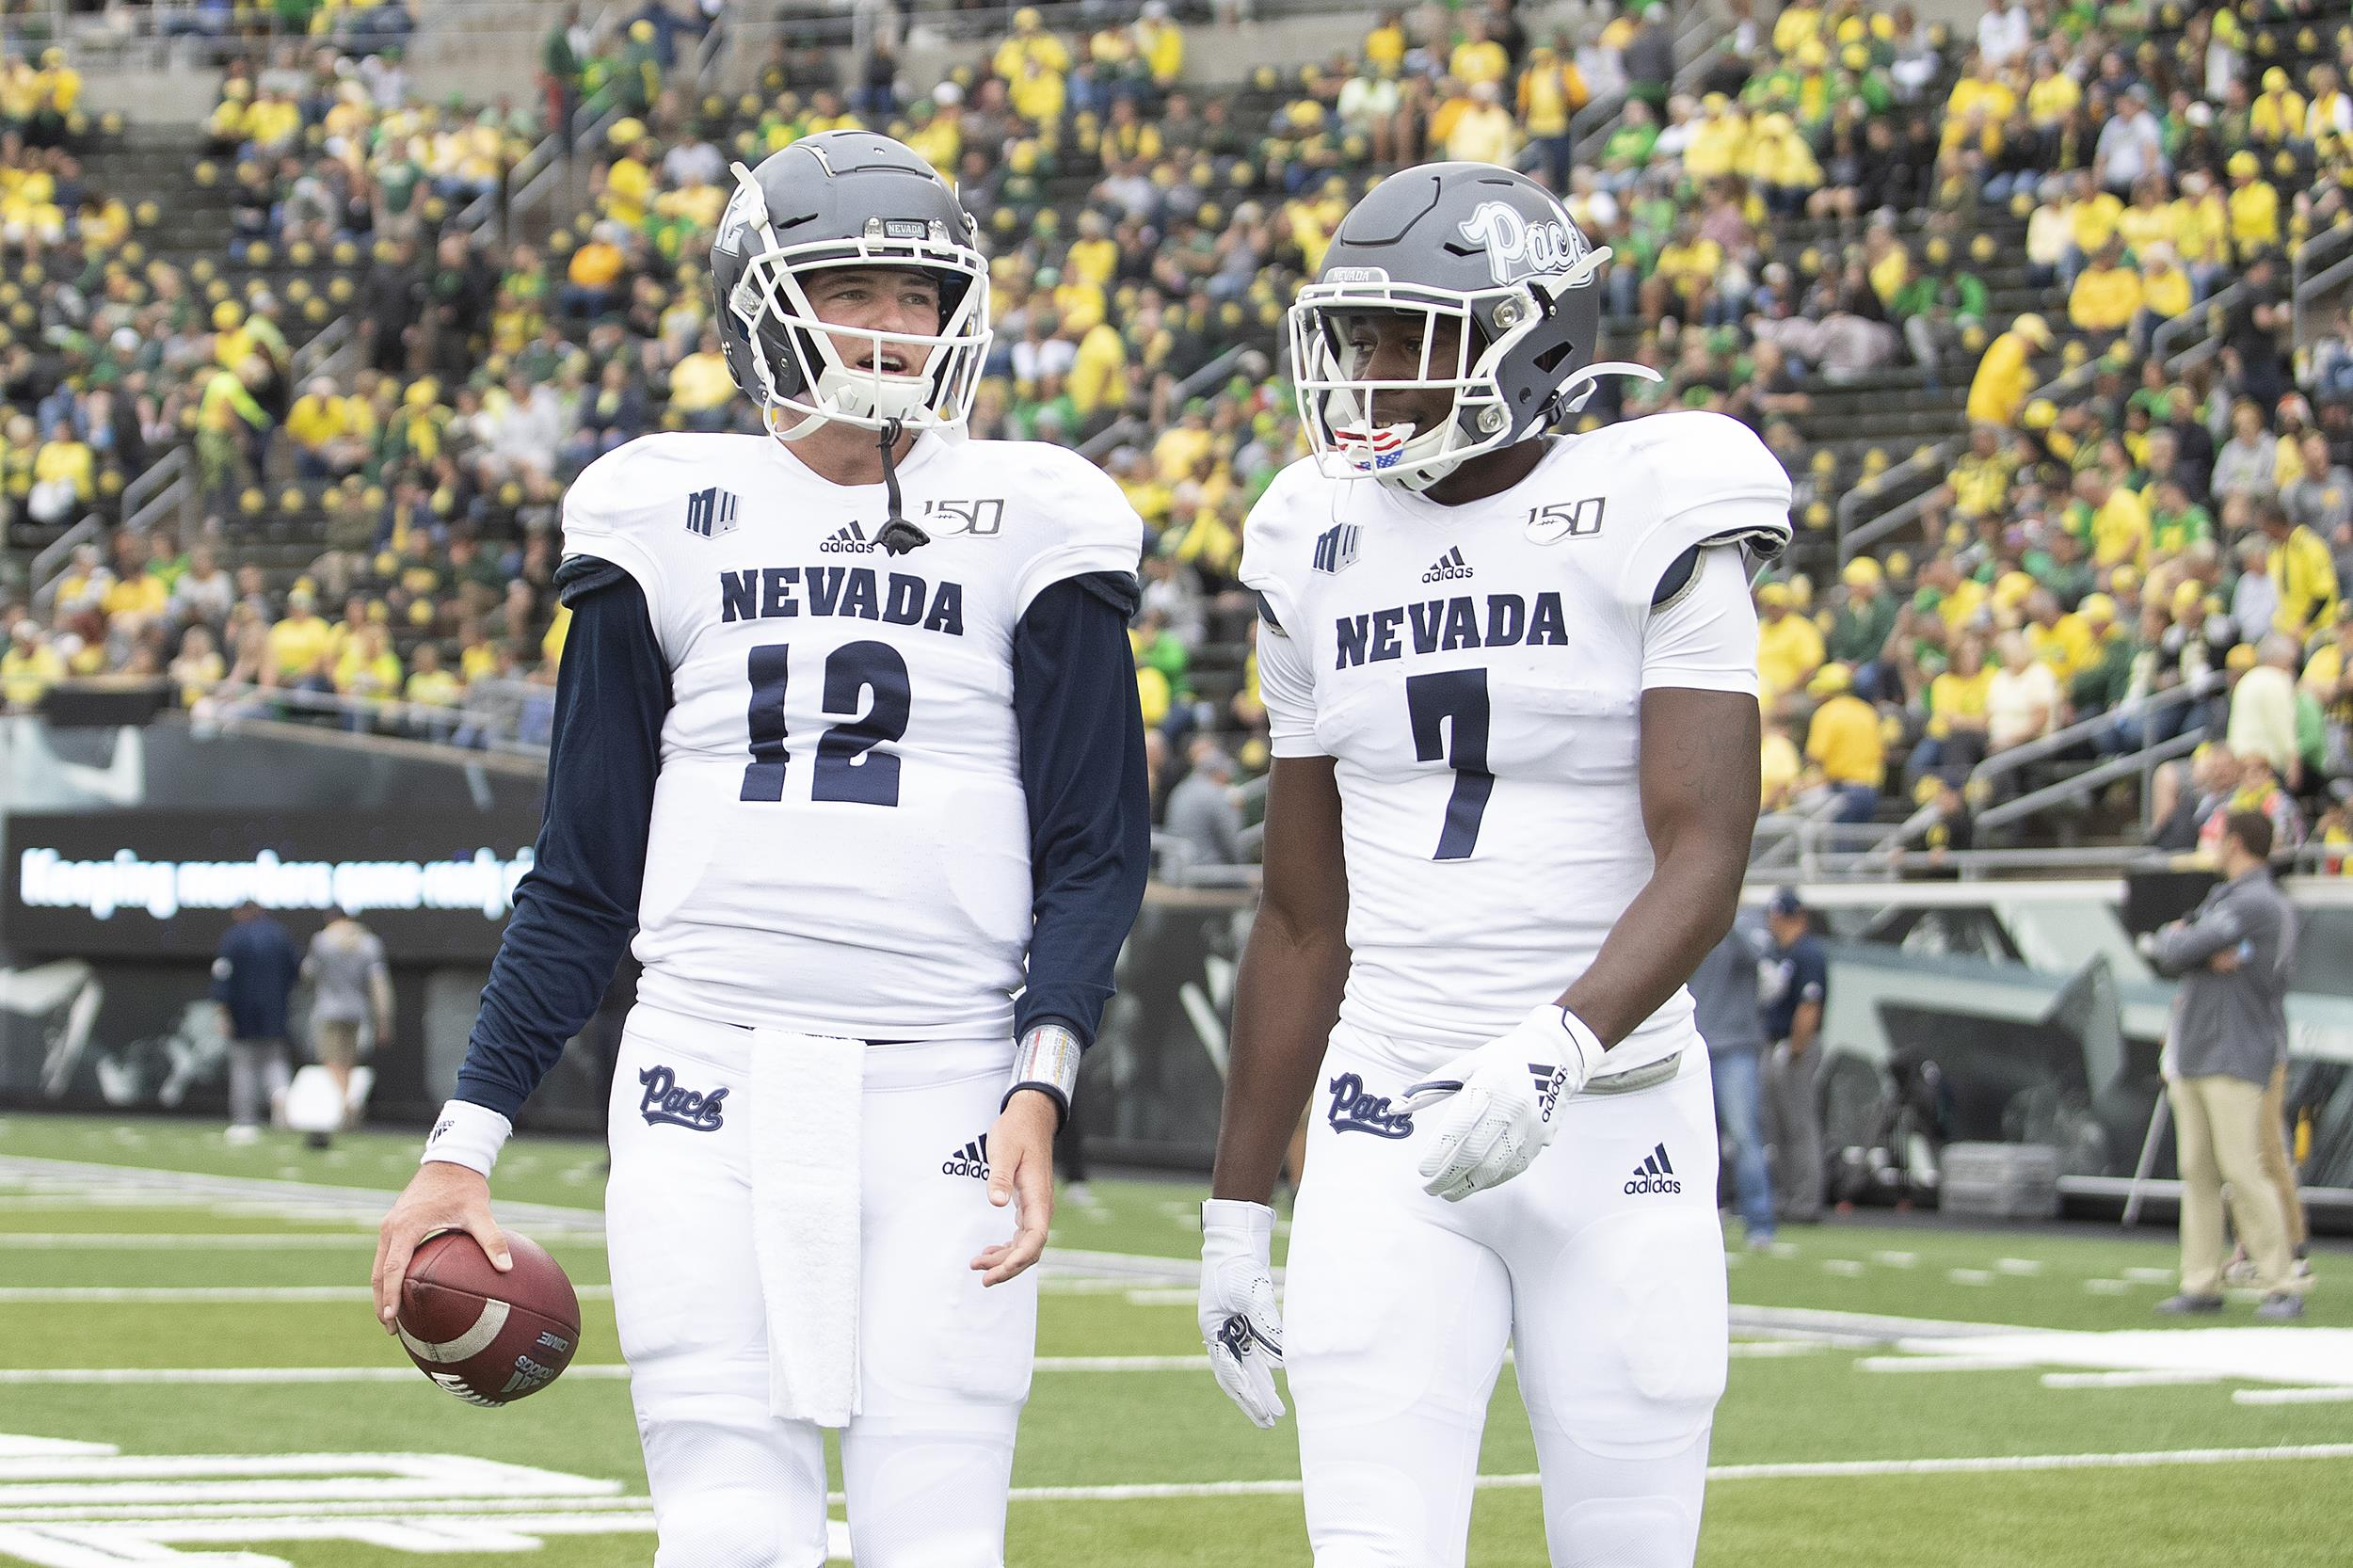 College football underrated teams 2021